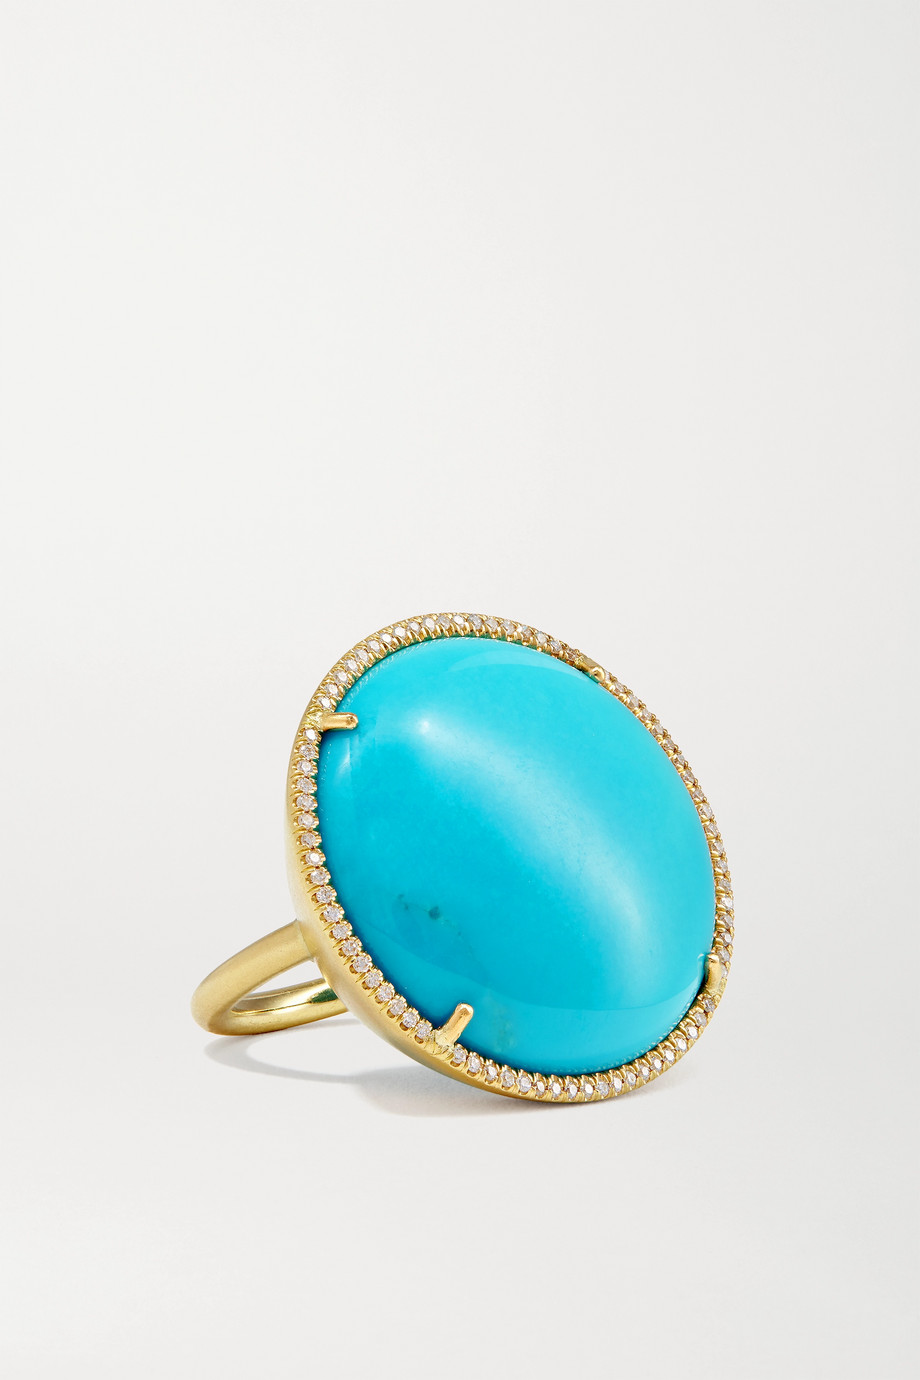 Irene Neuwirth Classic 18-karat gold, turquoise and diamond ring